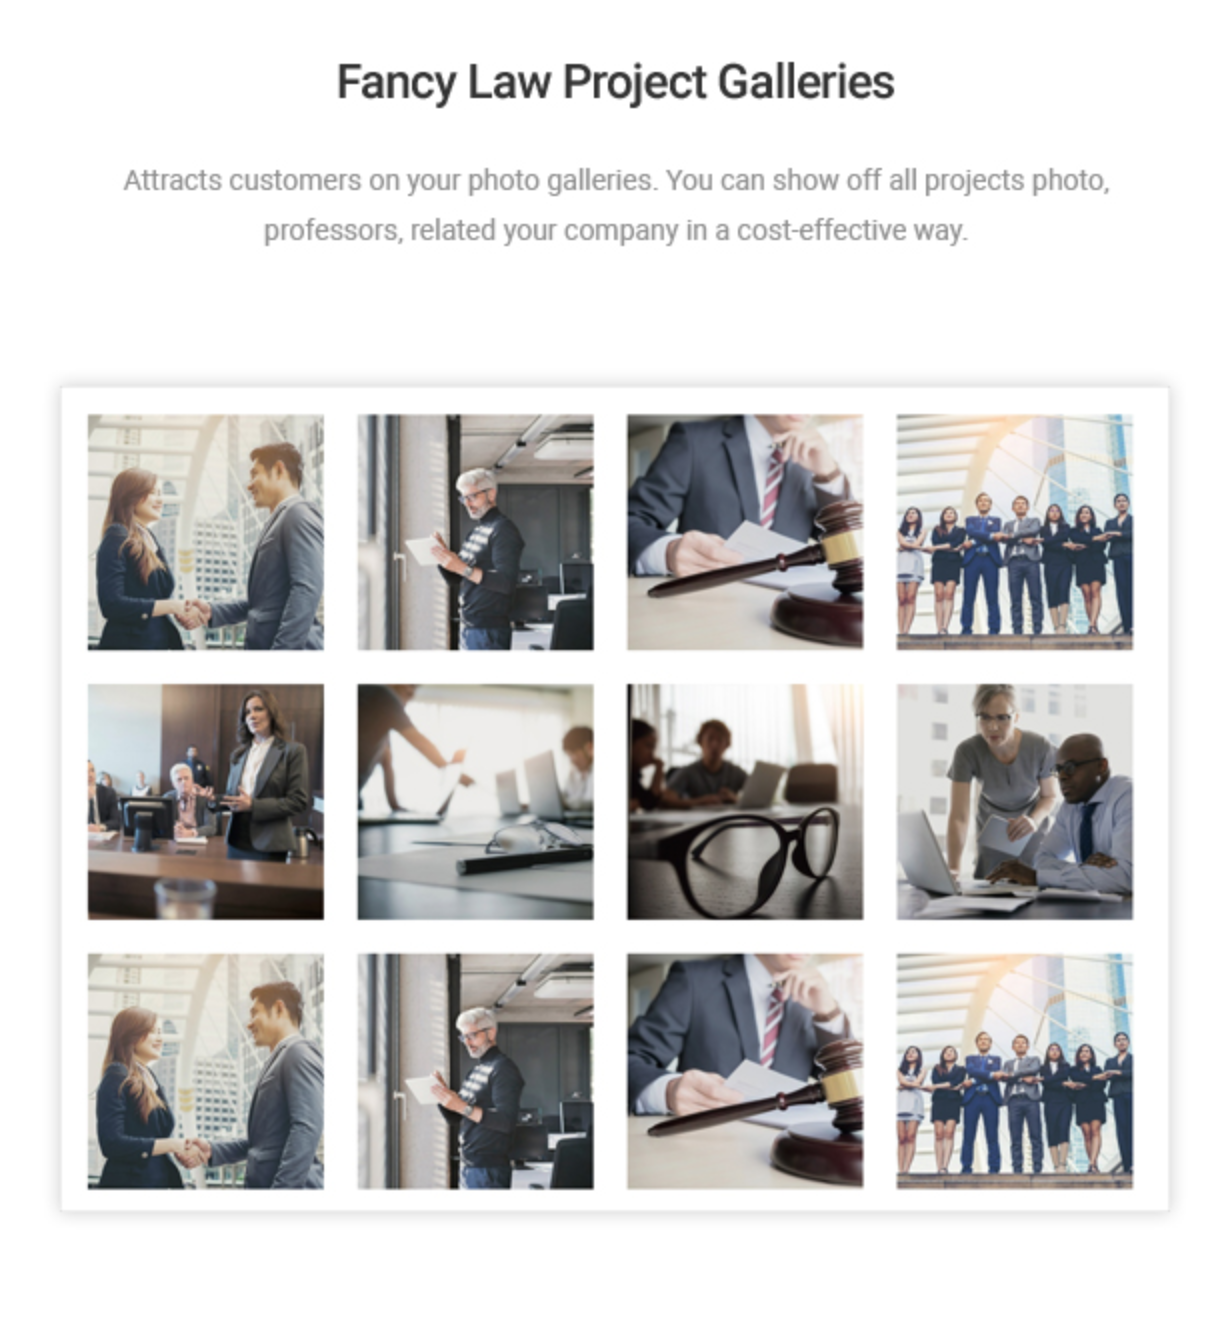 Mastor - Law, Firm & Legal Attorney WordPress Theme Law Project Gallery